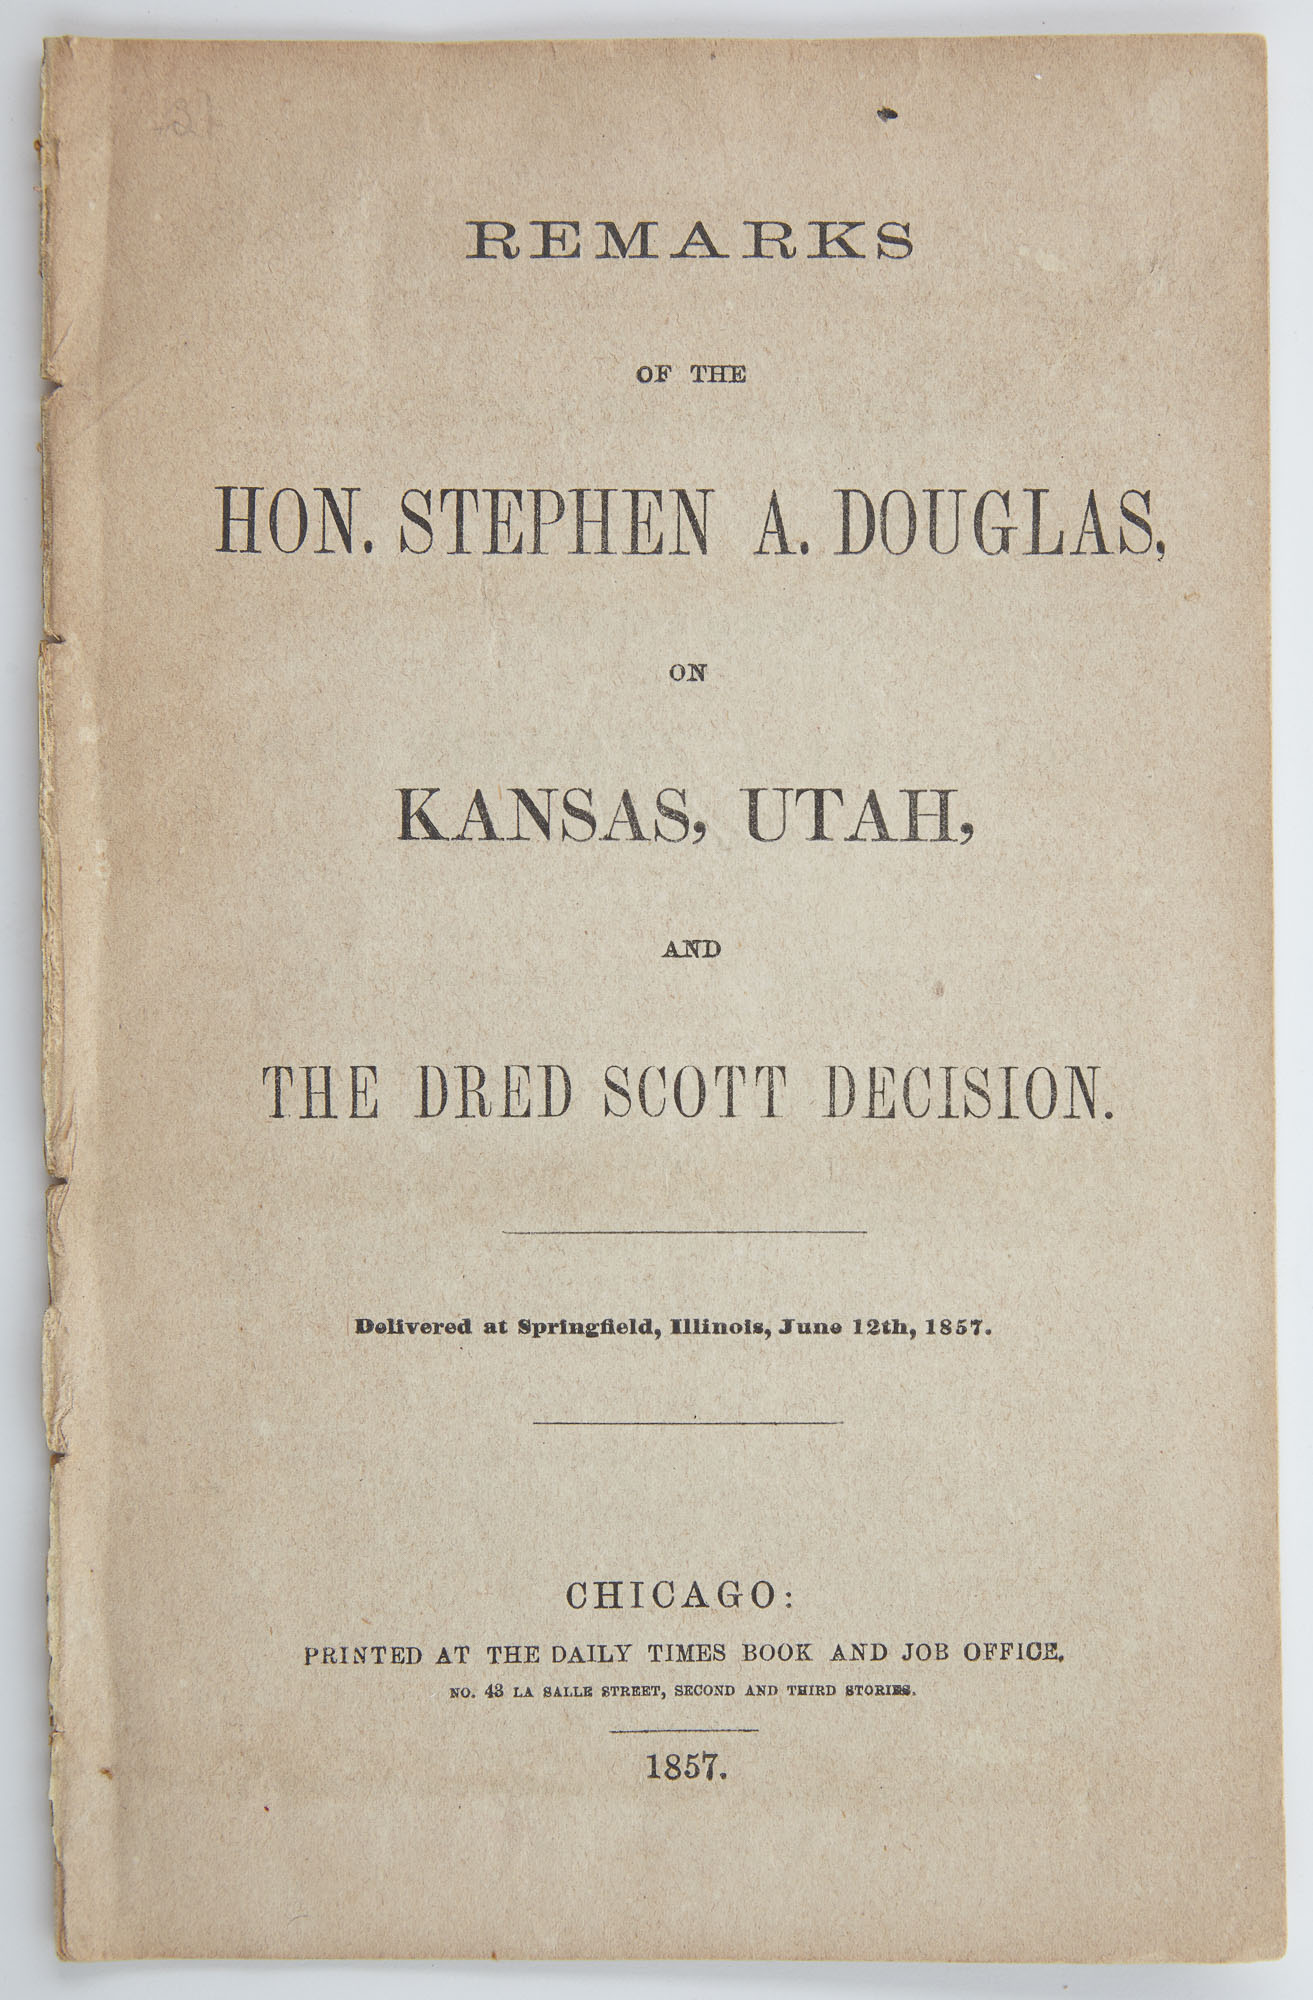 Lot image - DOUGLAS, STEPHEN A.  Remarks of the Hon. Stephen A. Douglas on Kansas, Utah, and the Dred Scott Decision.